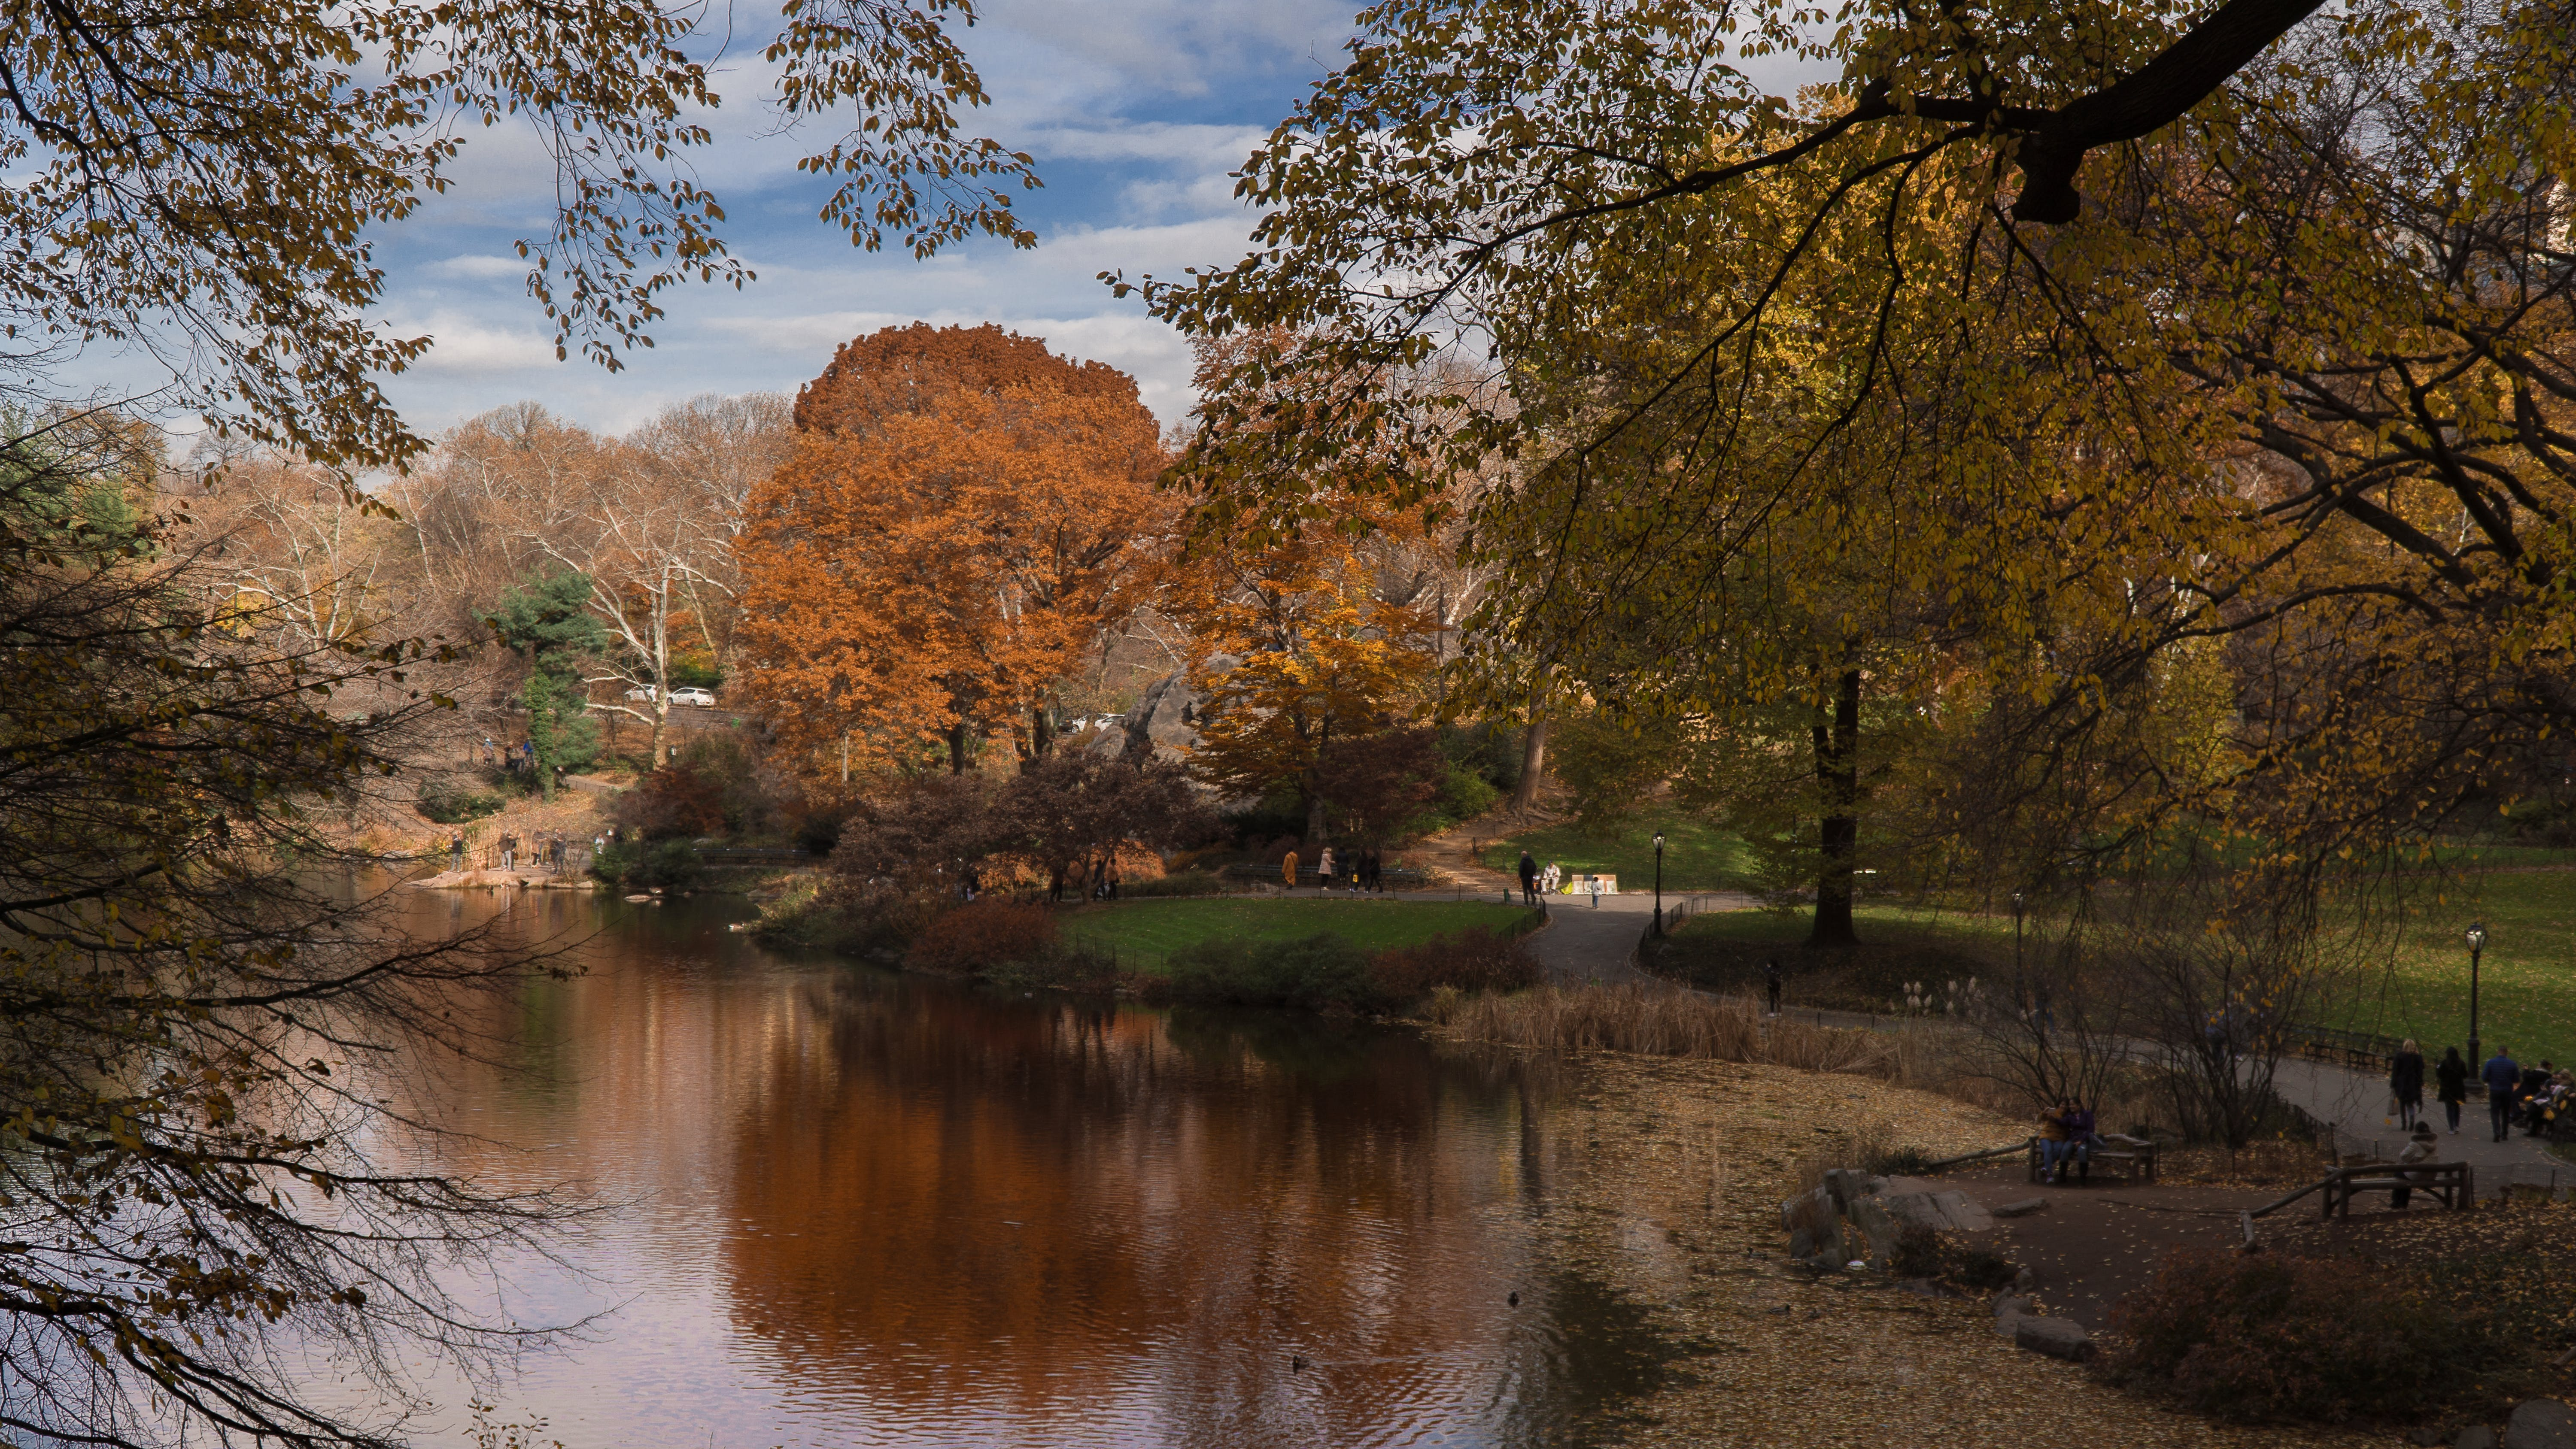 Free stock photo of central park, fall colors, fall foliage, fall leaves